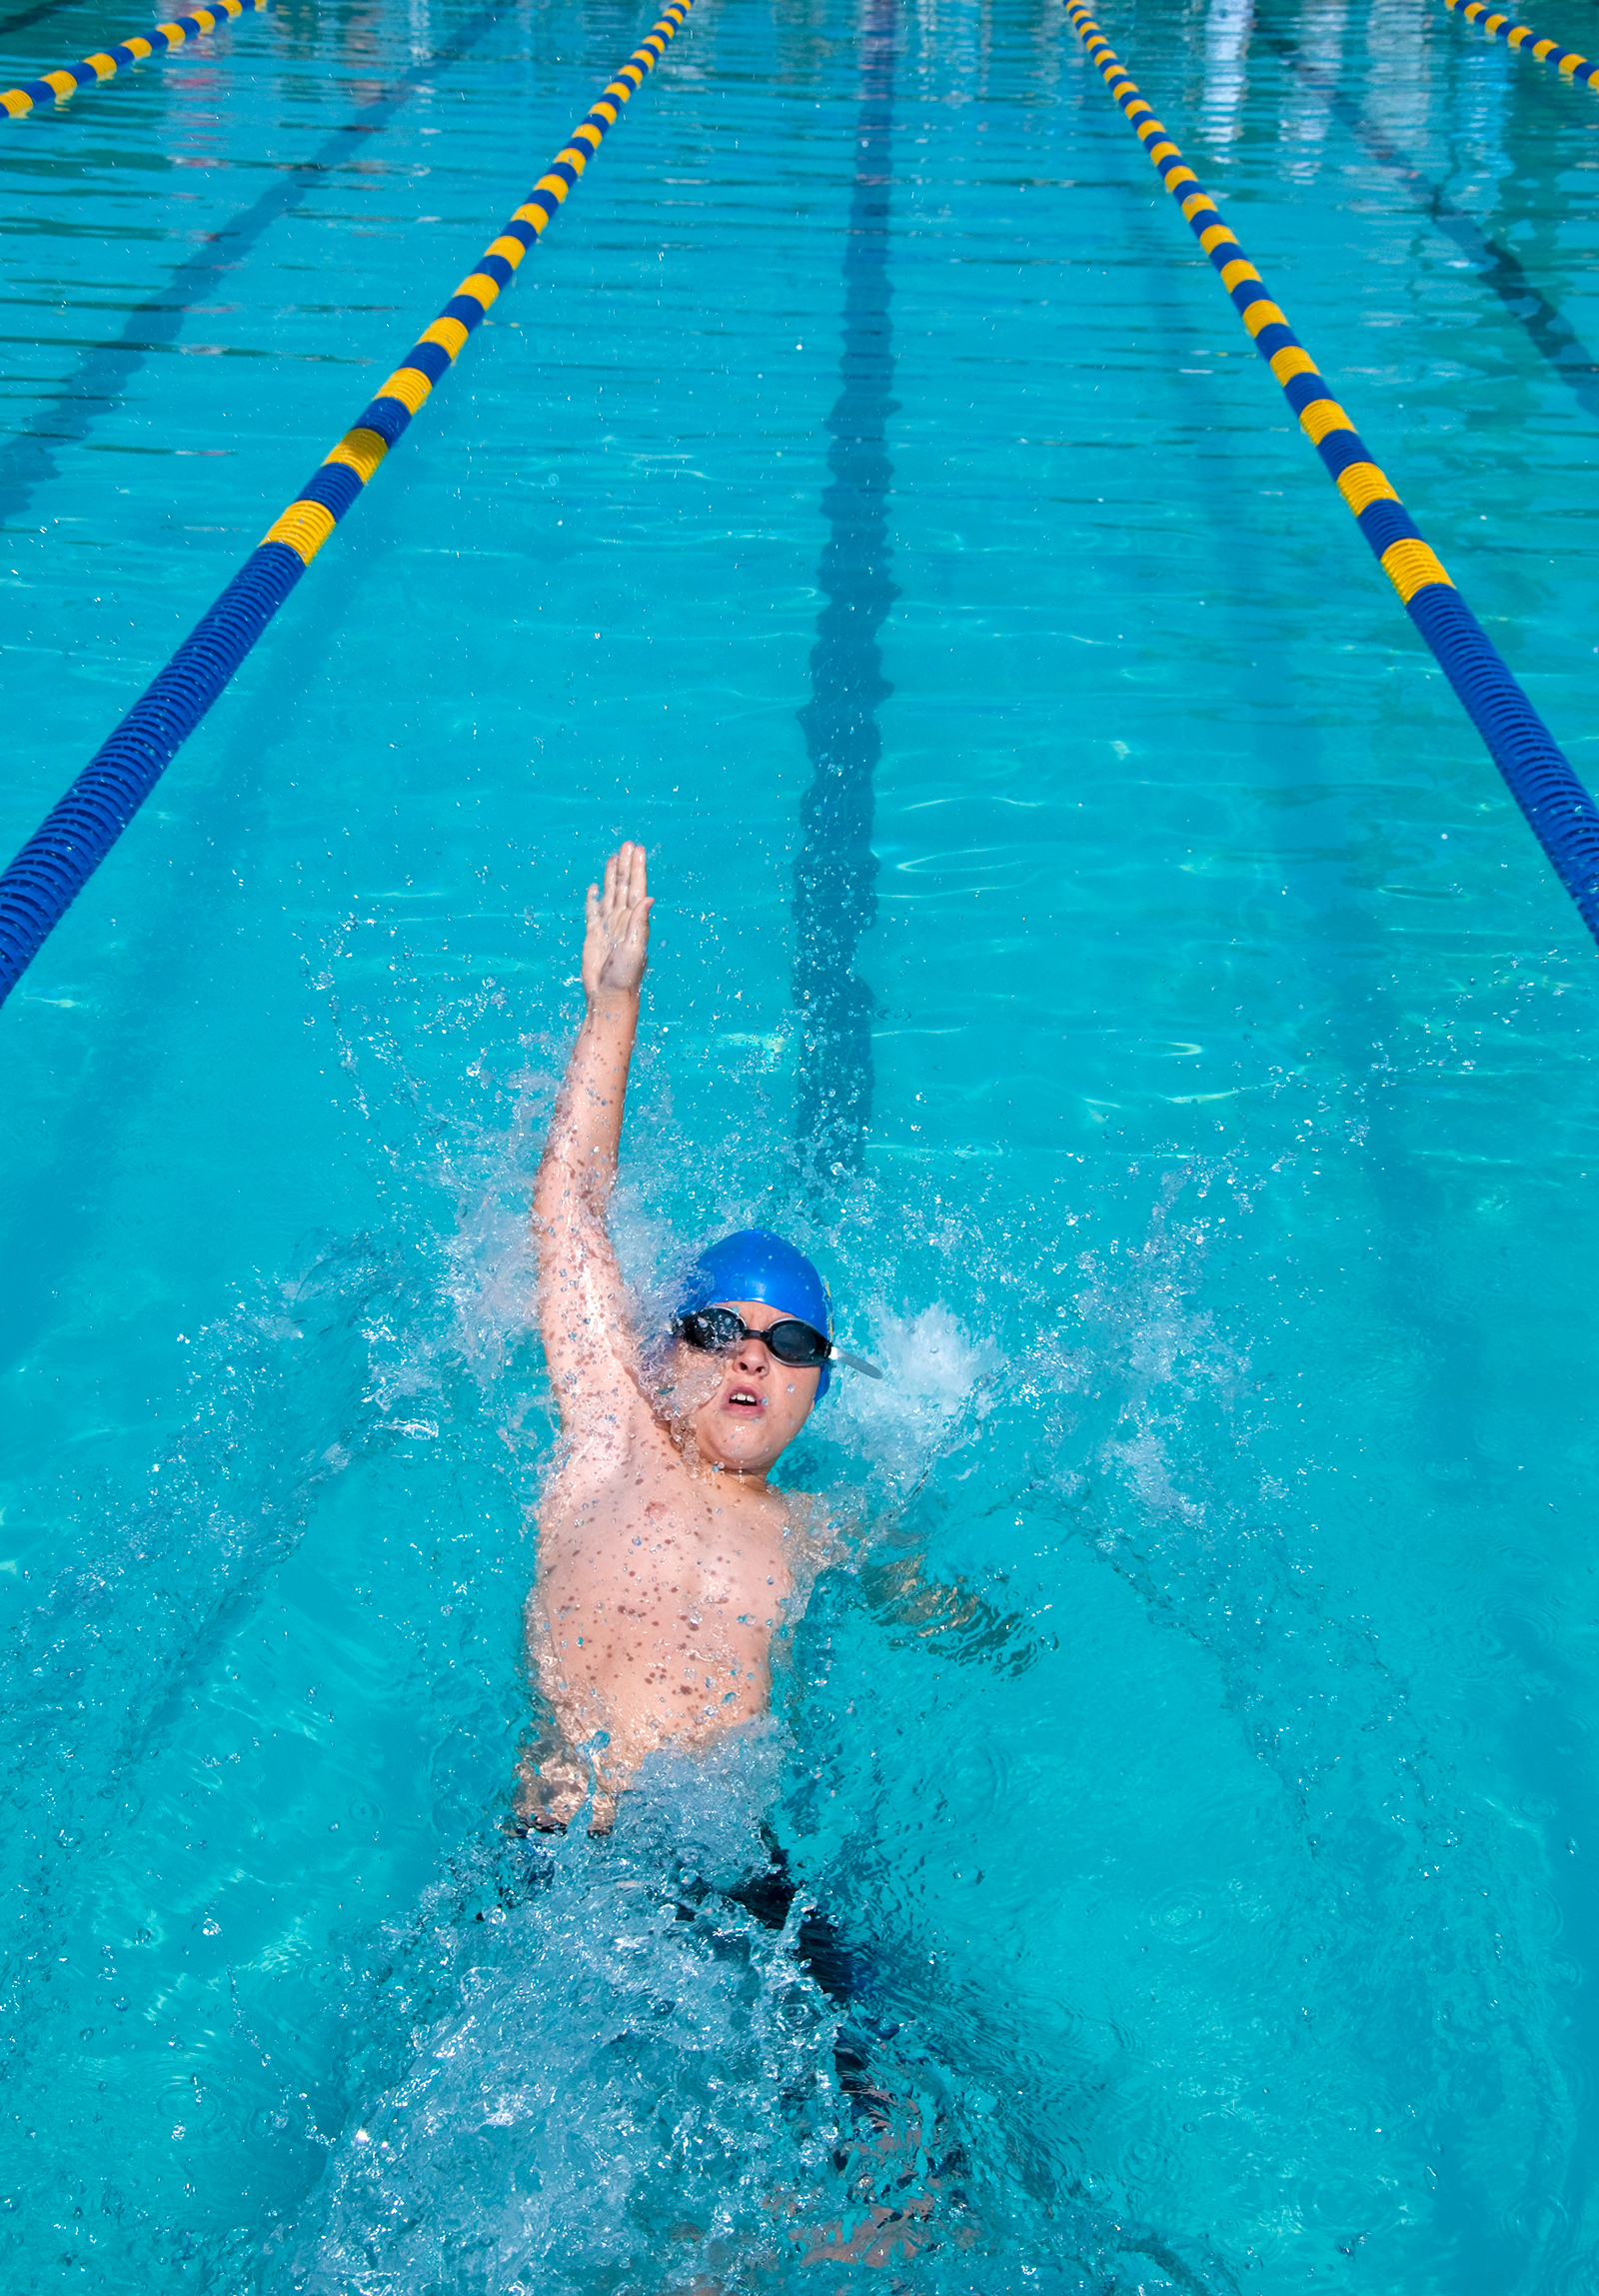 A young boy swimming backstroke